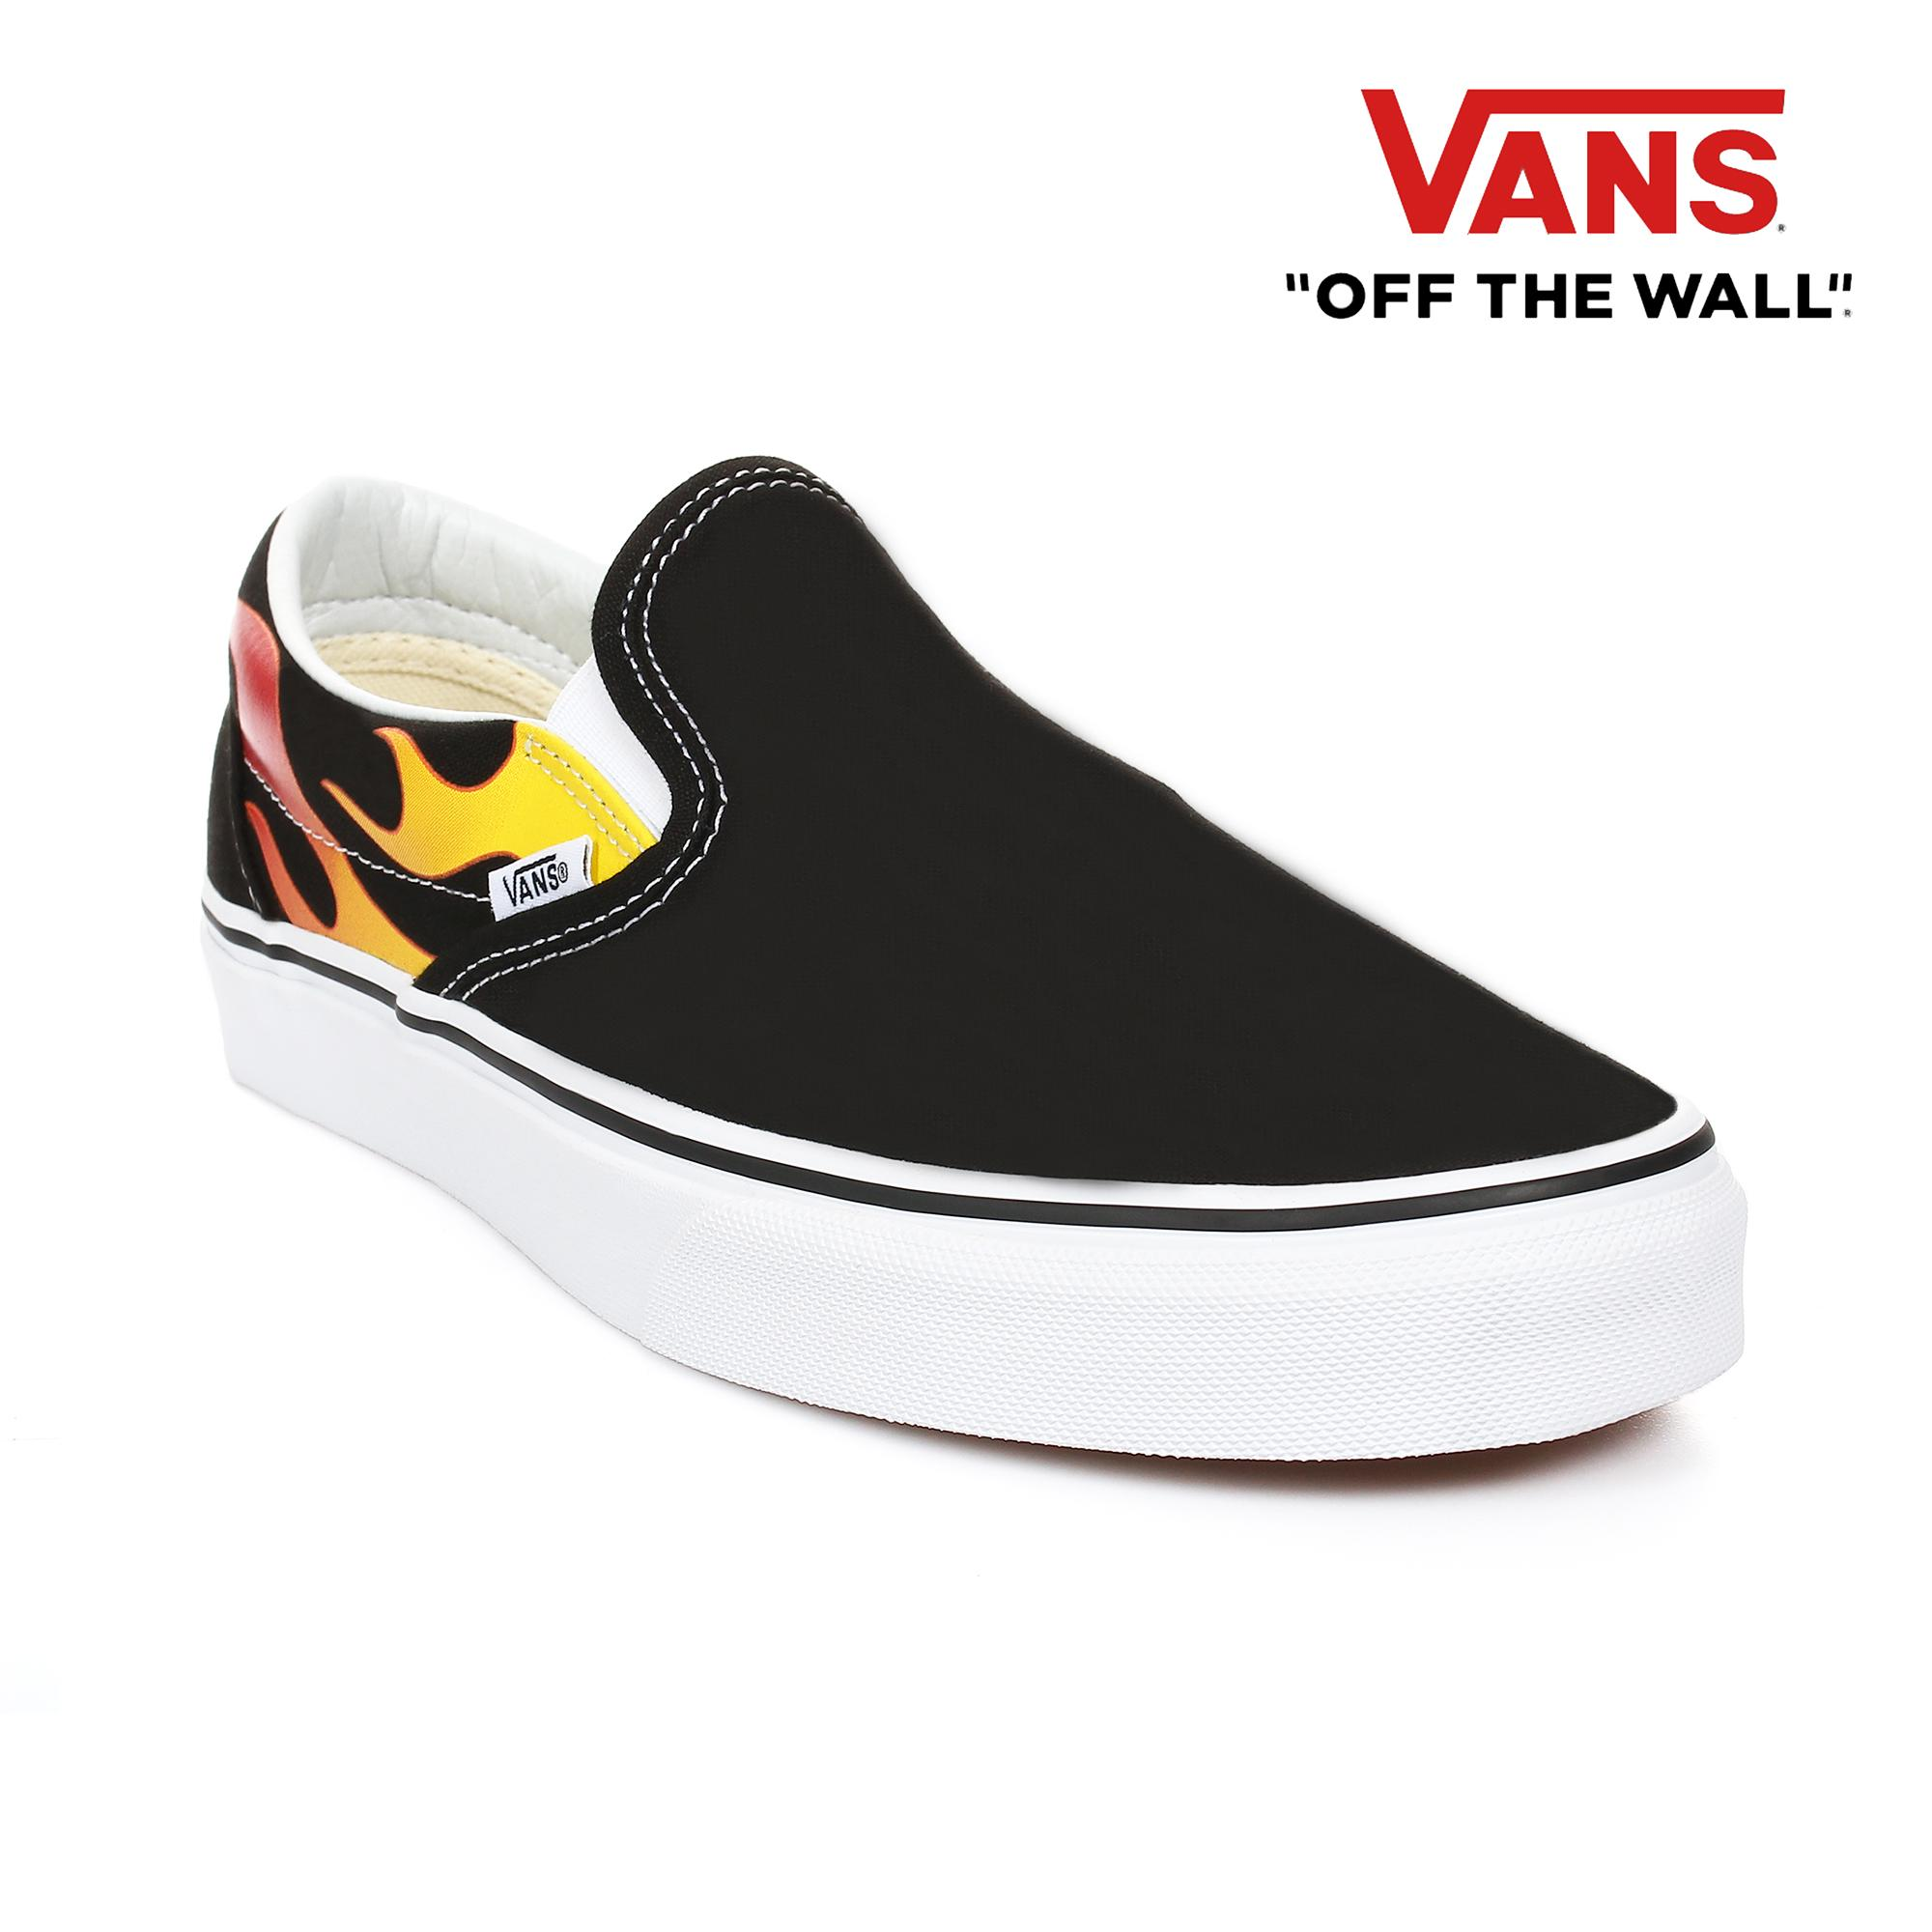 1c4414b86b1b77 Vans Men s Classic Slip-On Flame Sneakers (Black   Black  True White)